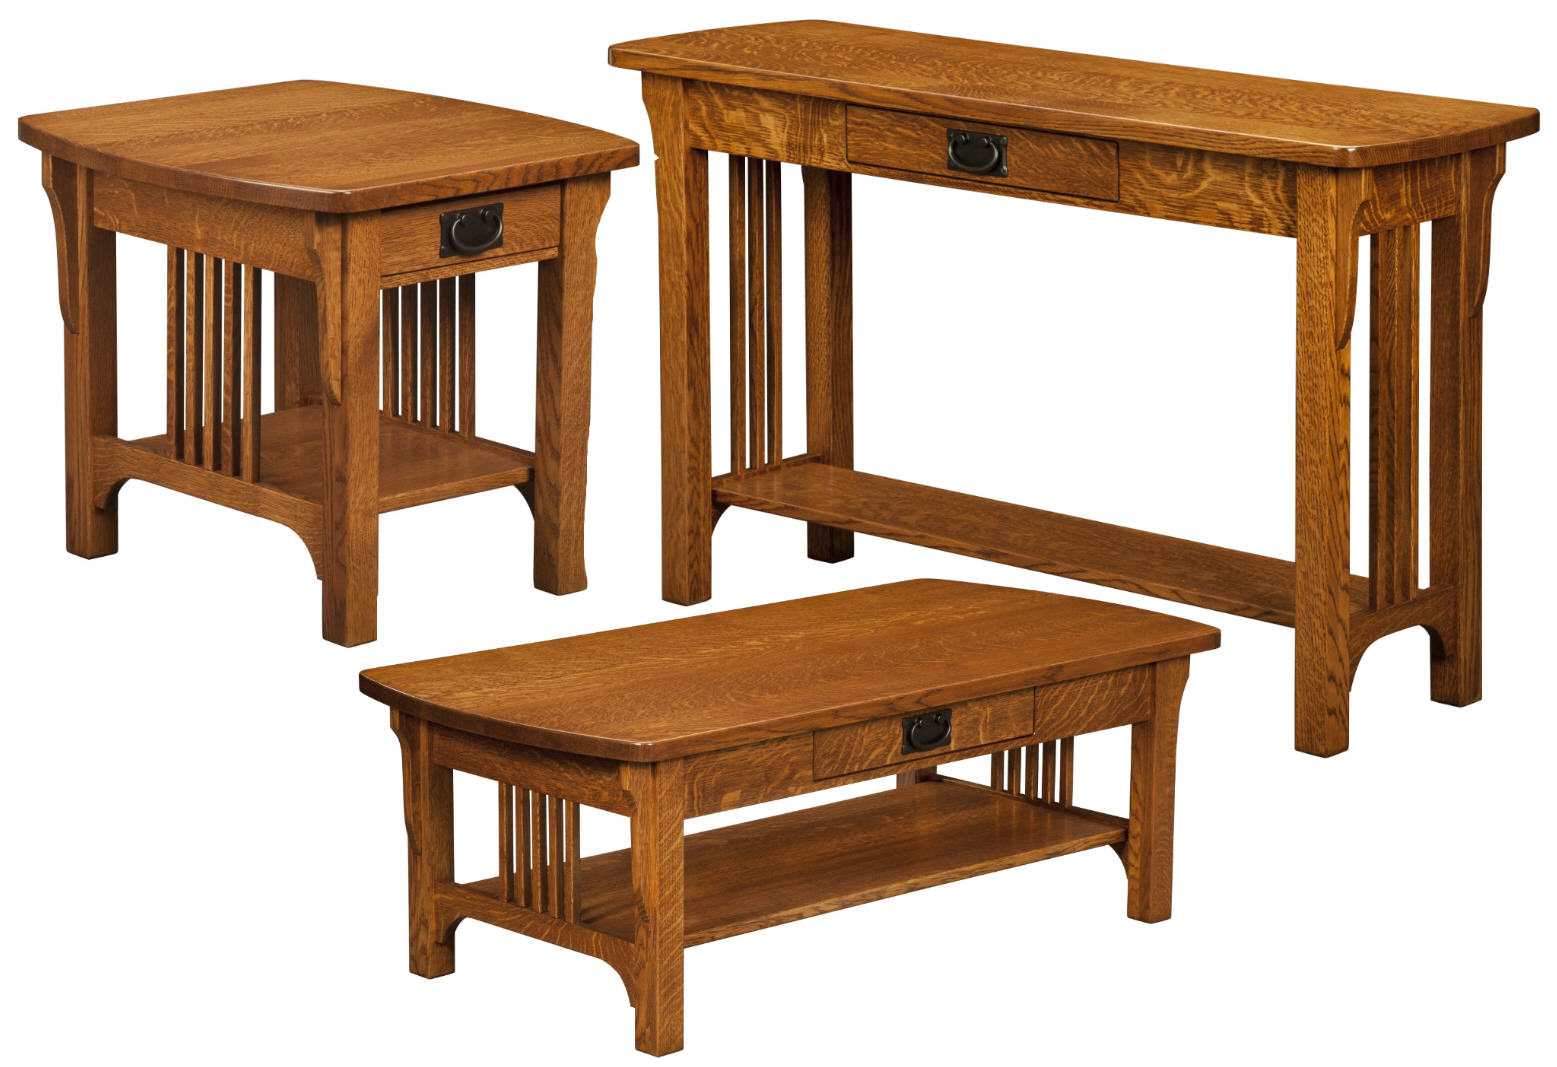 Craftsman Mission Open Occasional Tables 301 Craend 115 Occasionals Mission Stone Barn Furnishings Inc